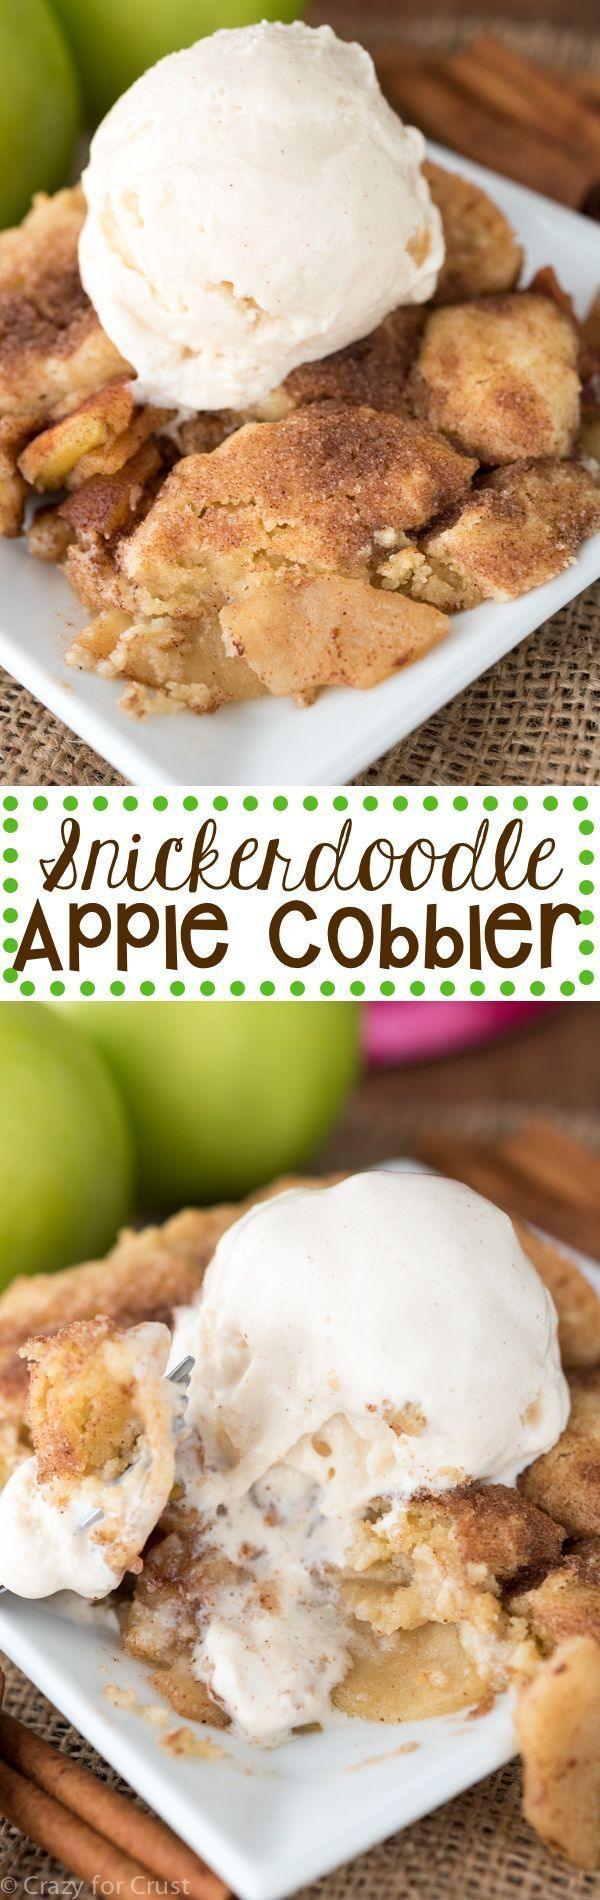 Elevate your #cobbler game with this #snickerdoodle version, featuring in-season apples and a snickerdoodle cookie dough topping. Get the recipe from @crazyforcrust